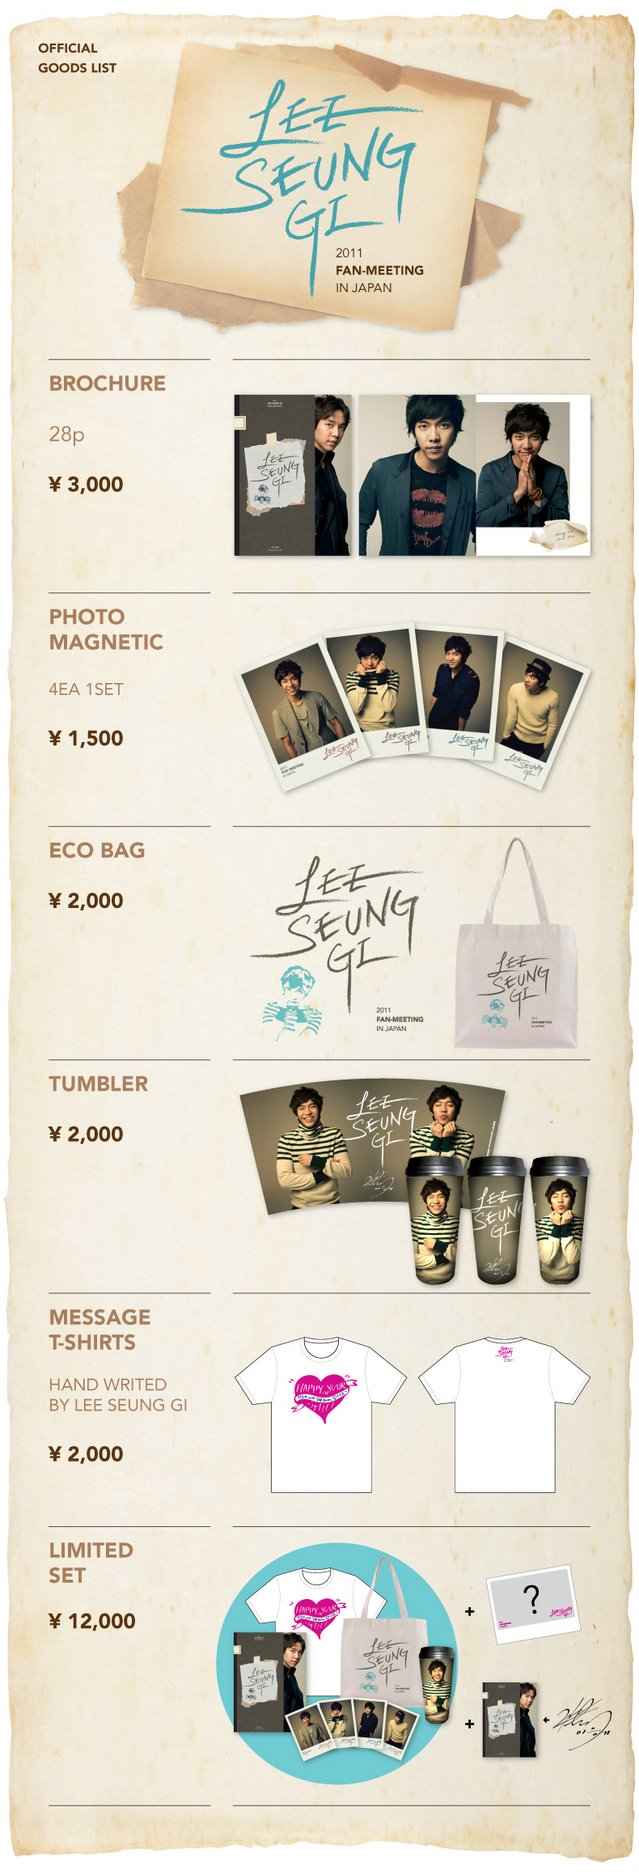 fanmgoods